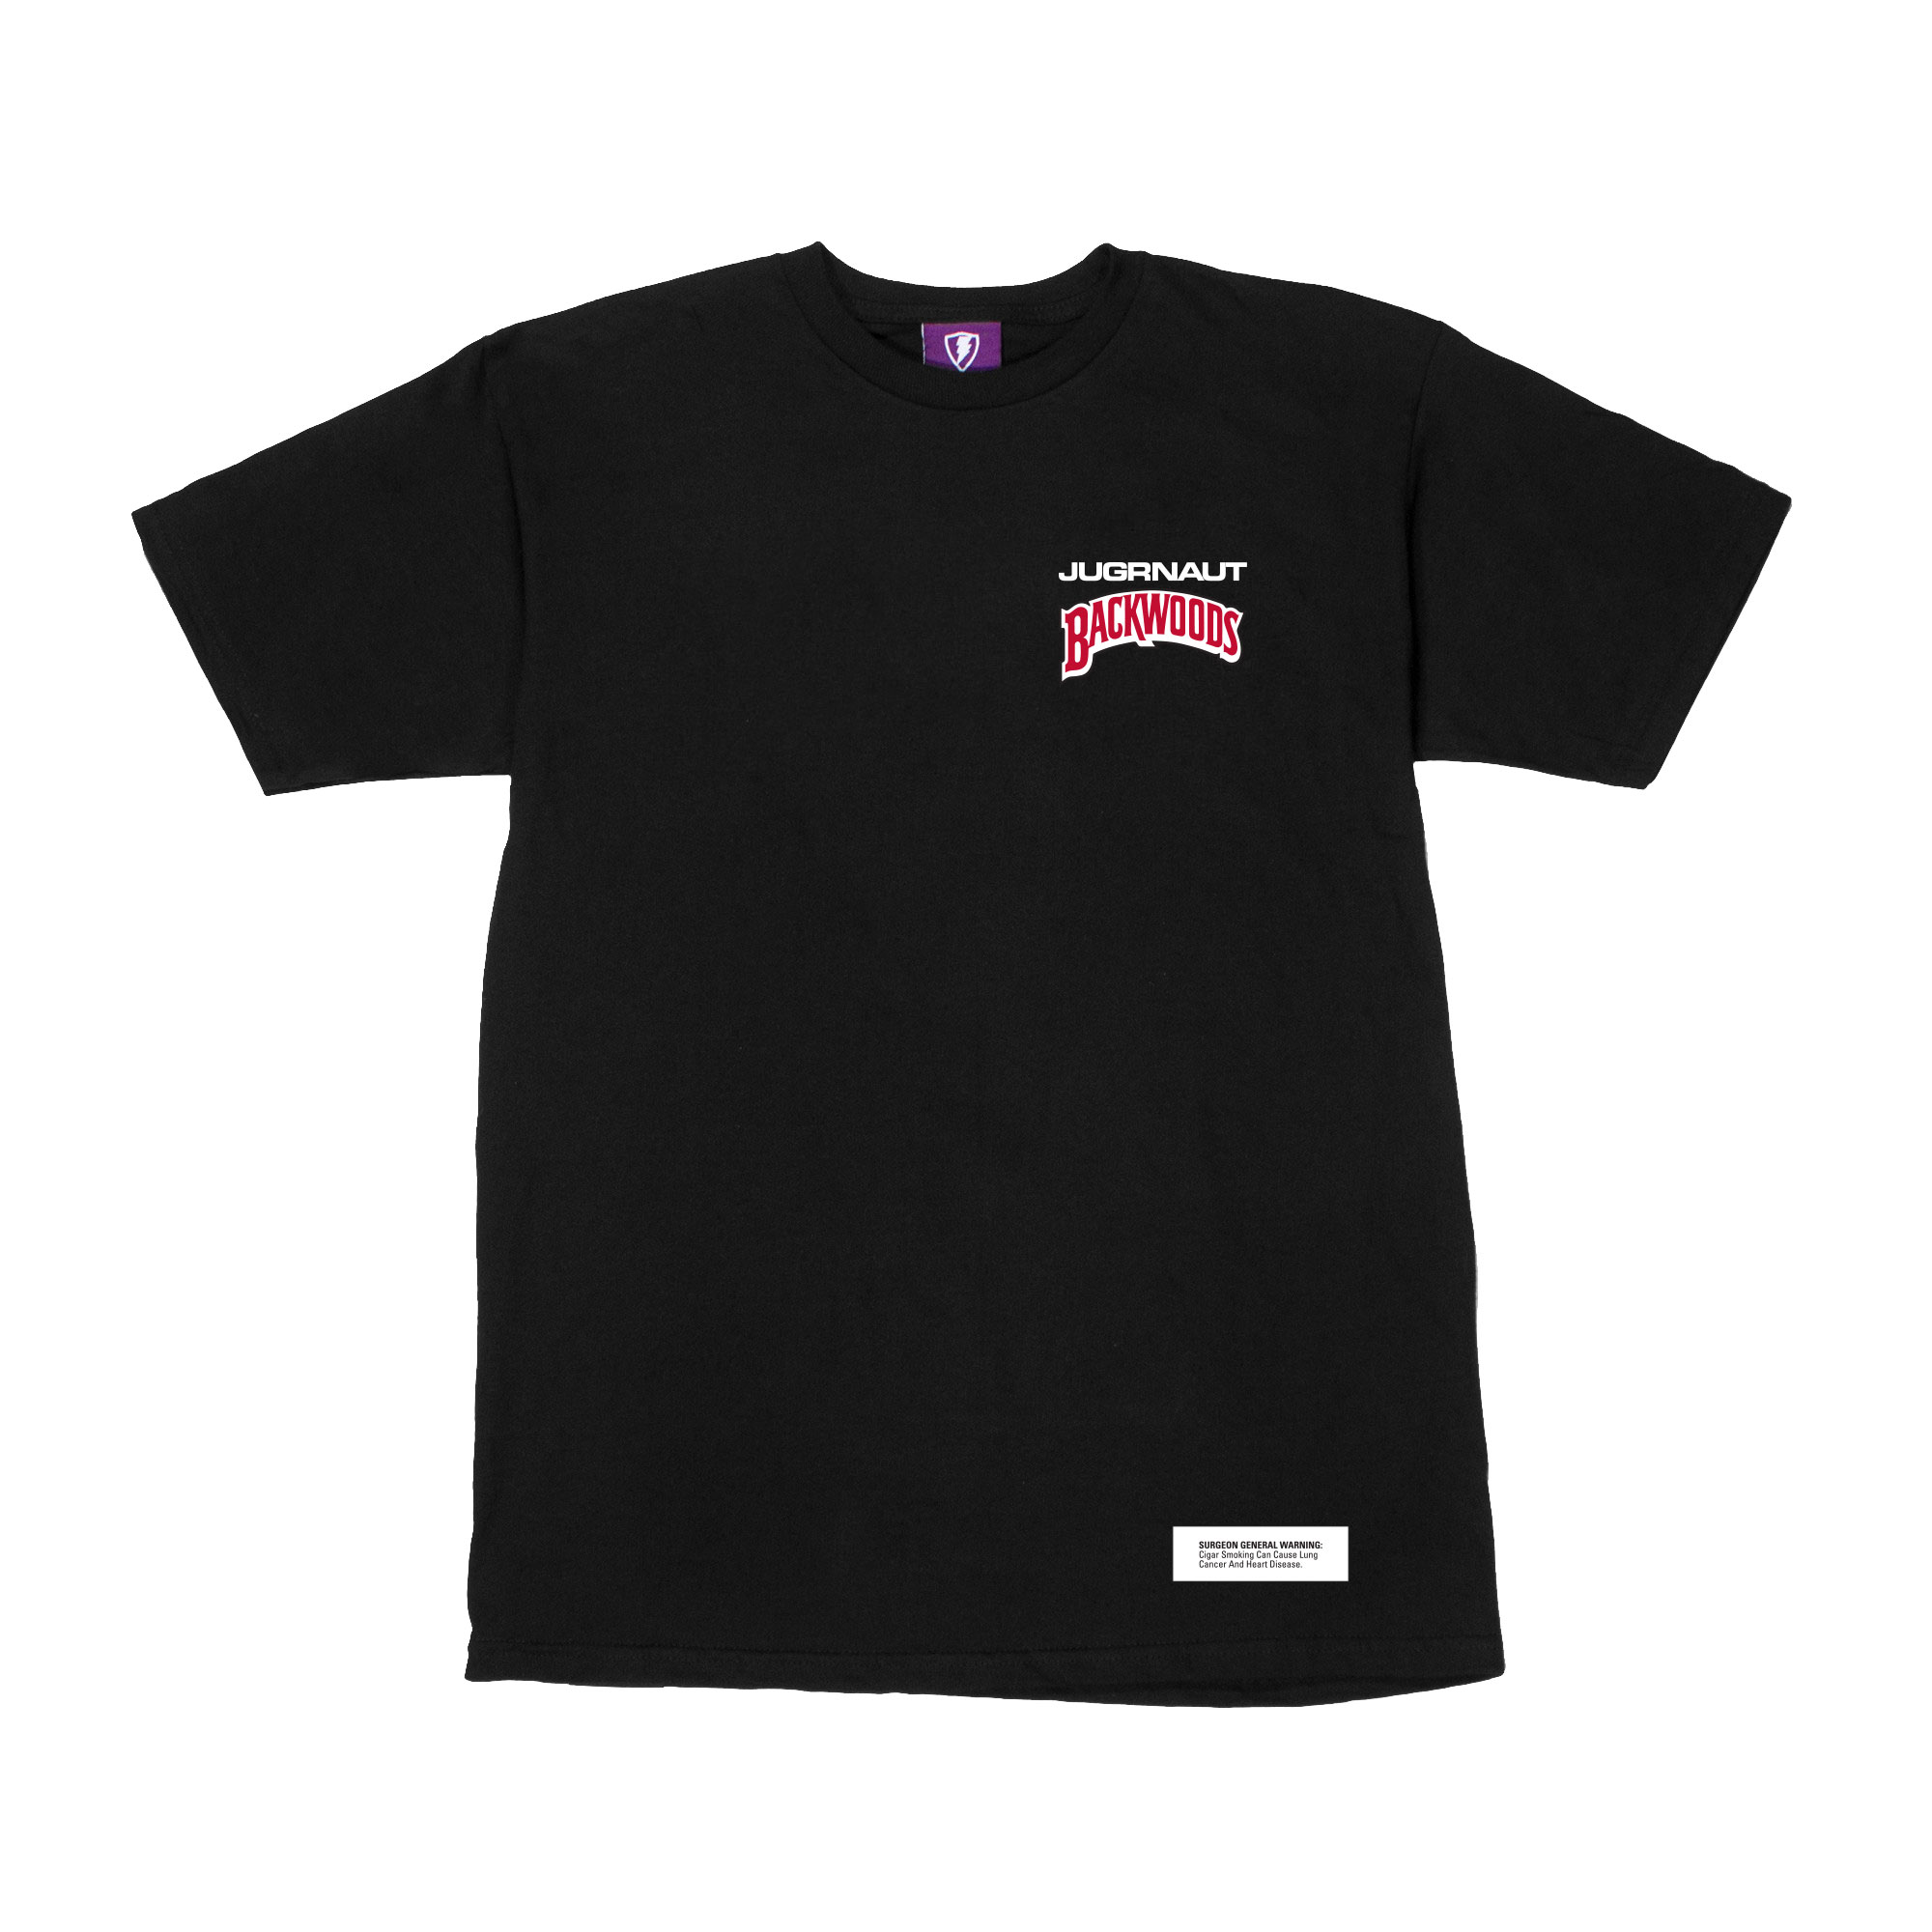 Jugrnaut-X-Backwoods-Tee1-Black-F